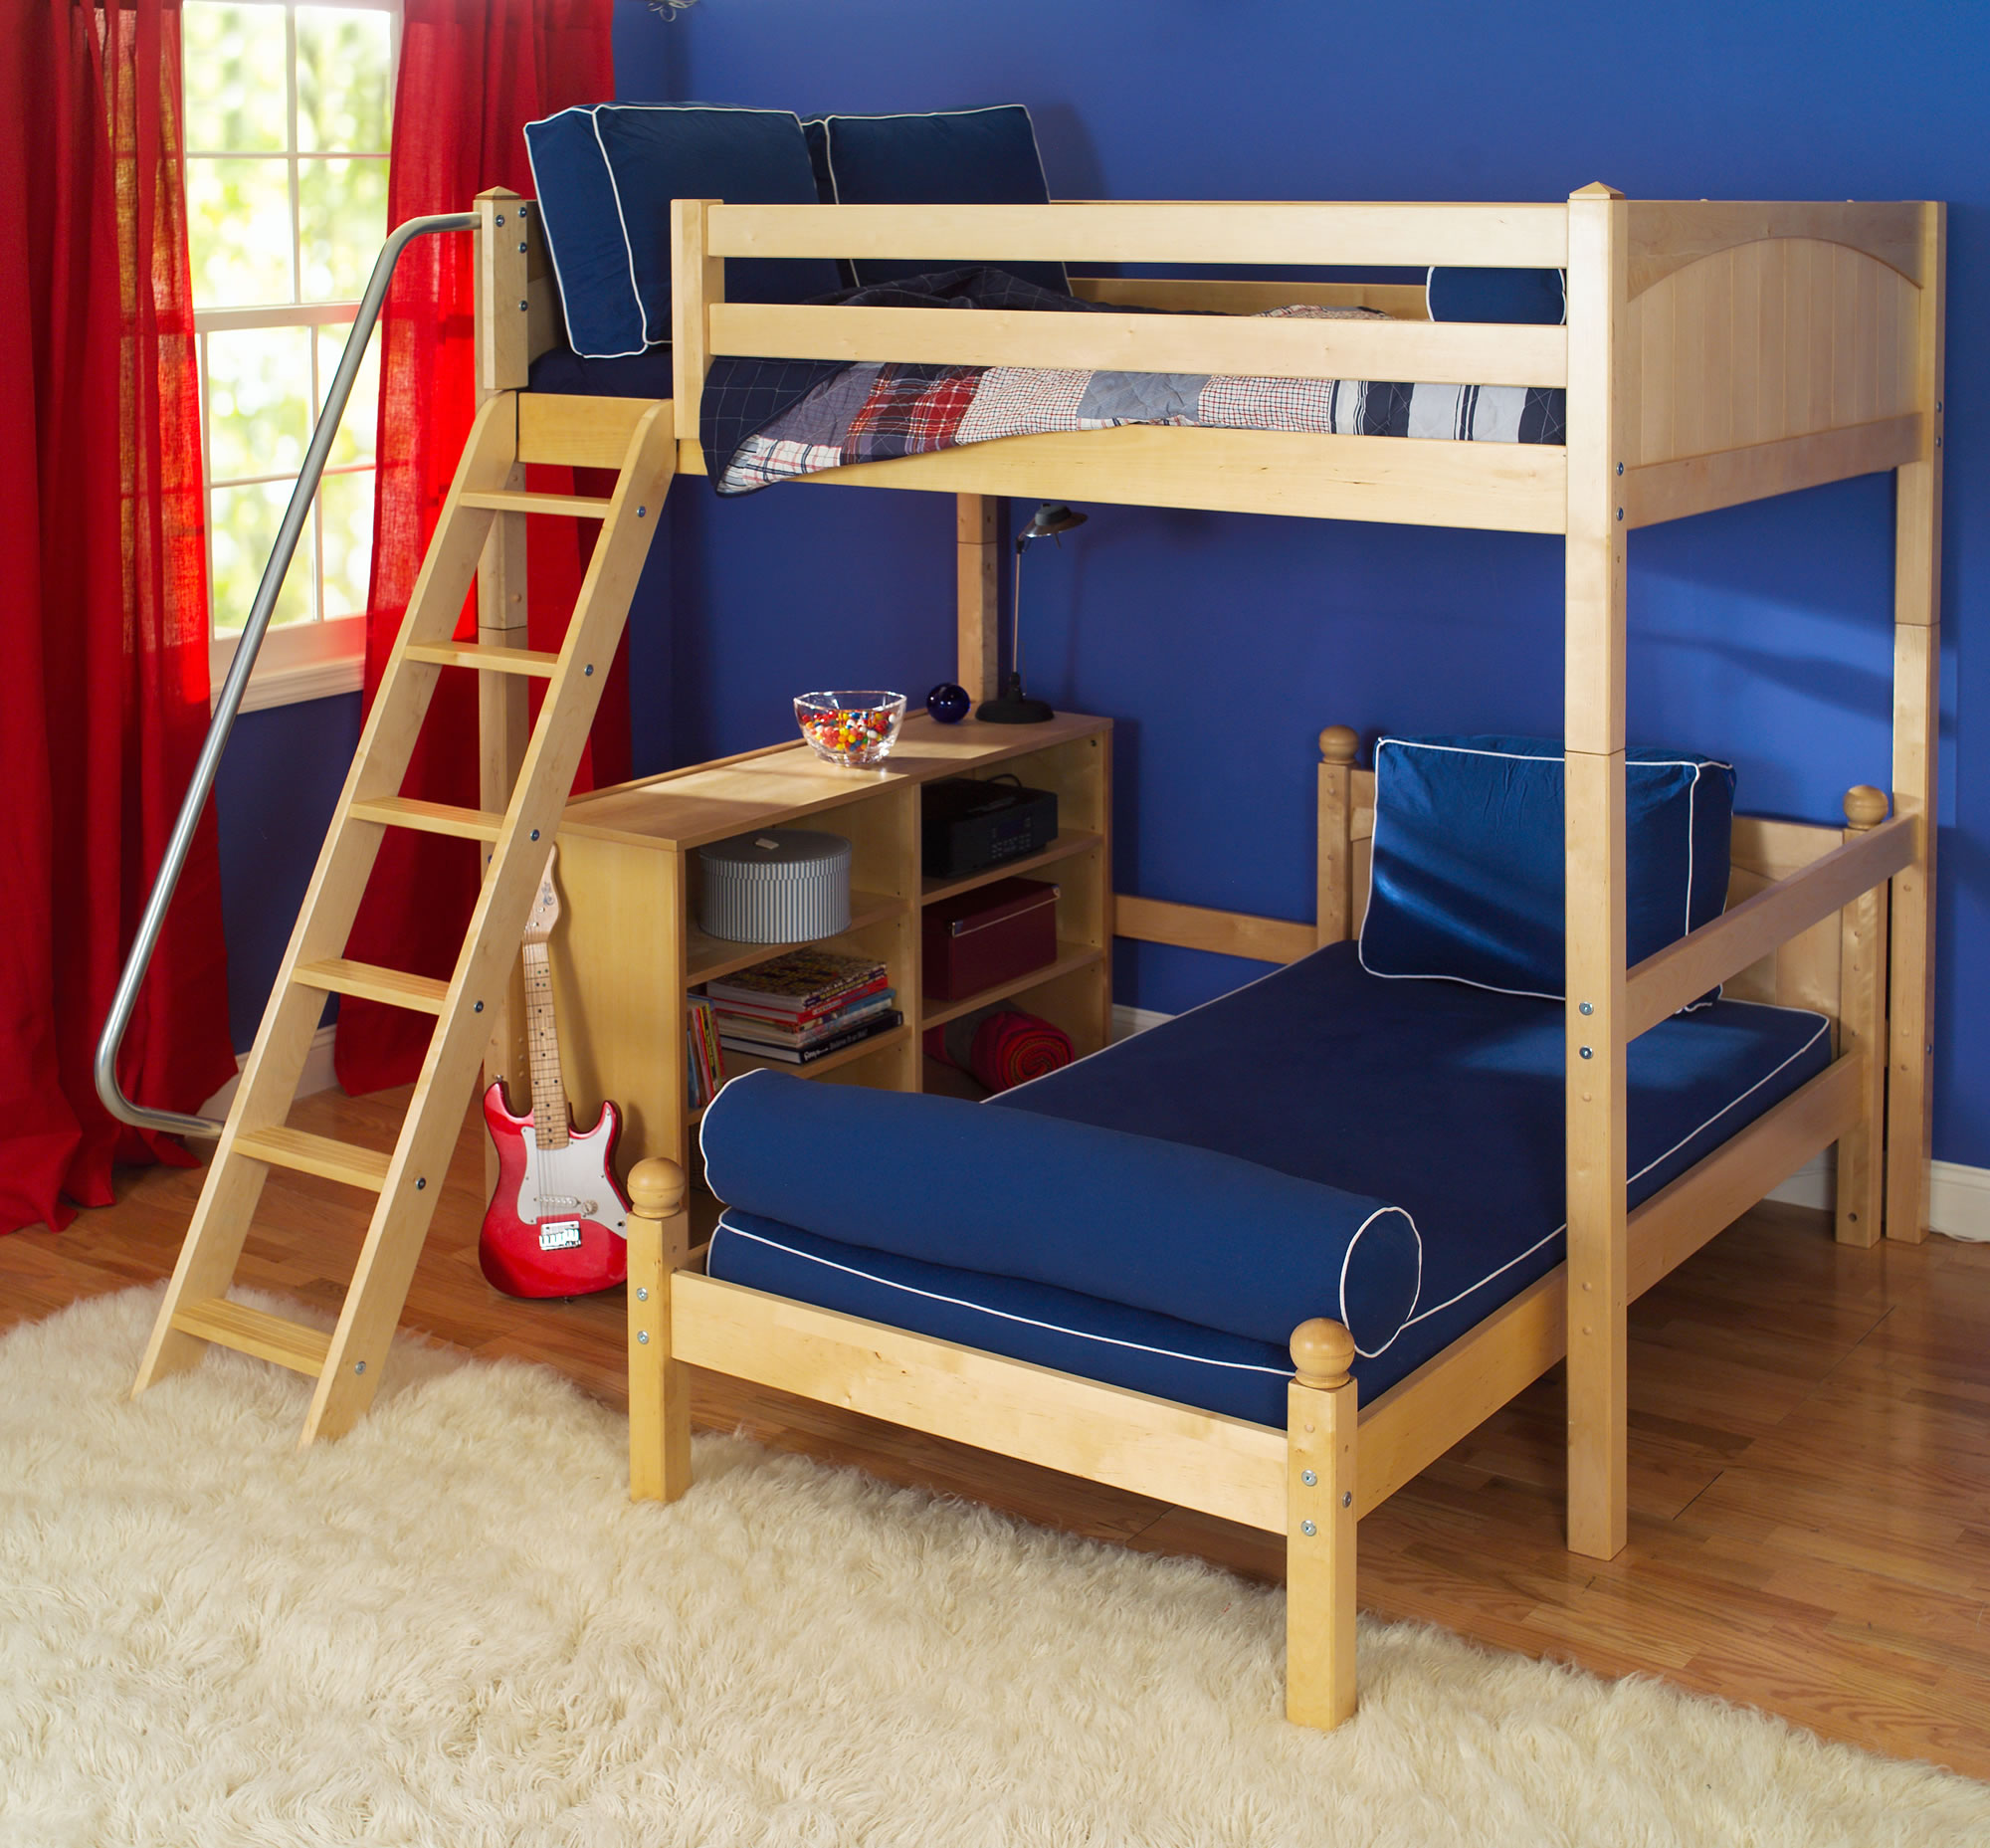 L shaped bunk bed plans bed plans diy blueprints for Bunk bed ideas